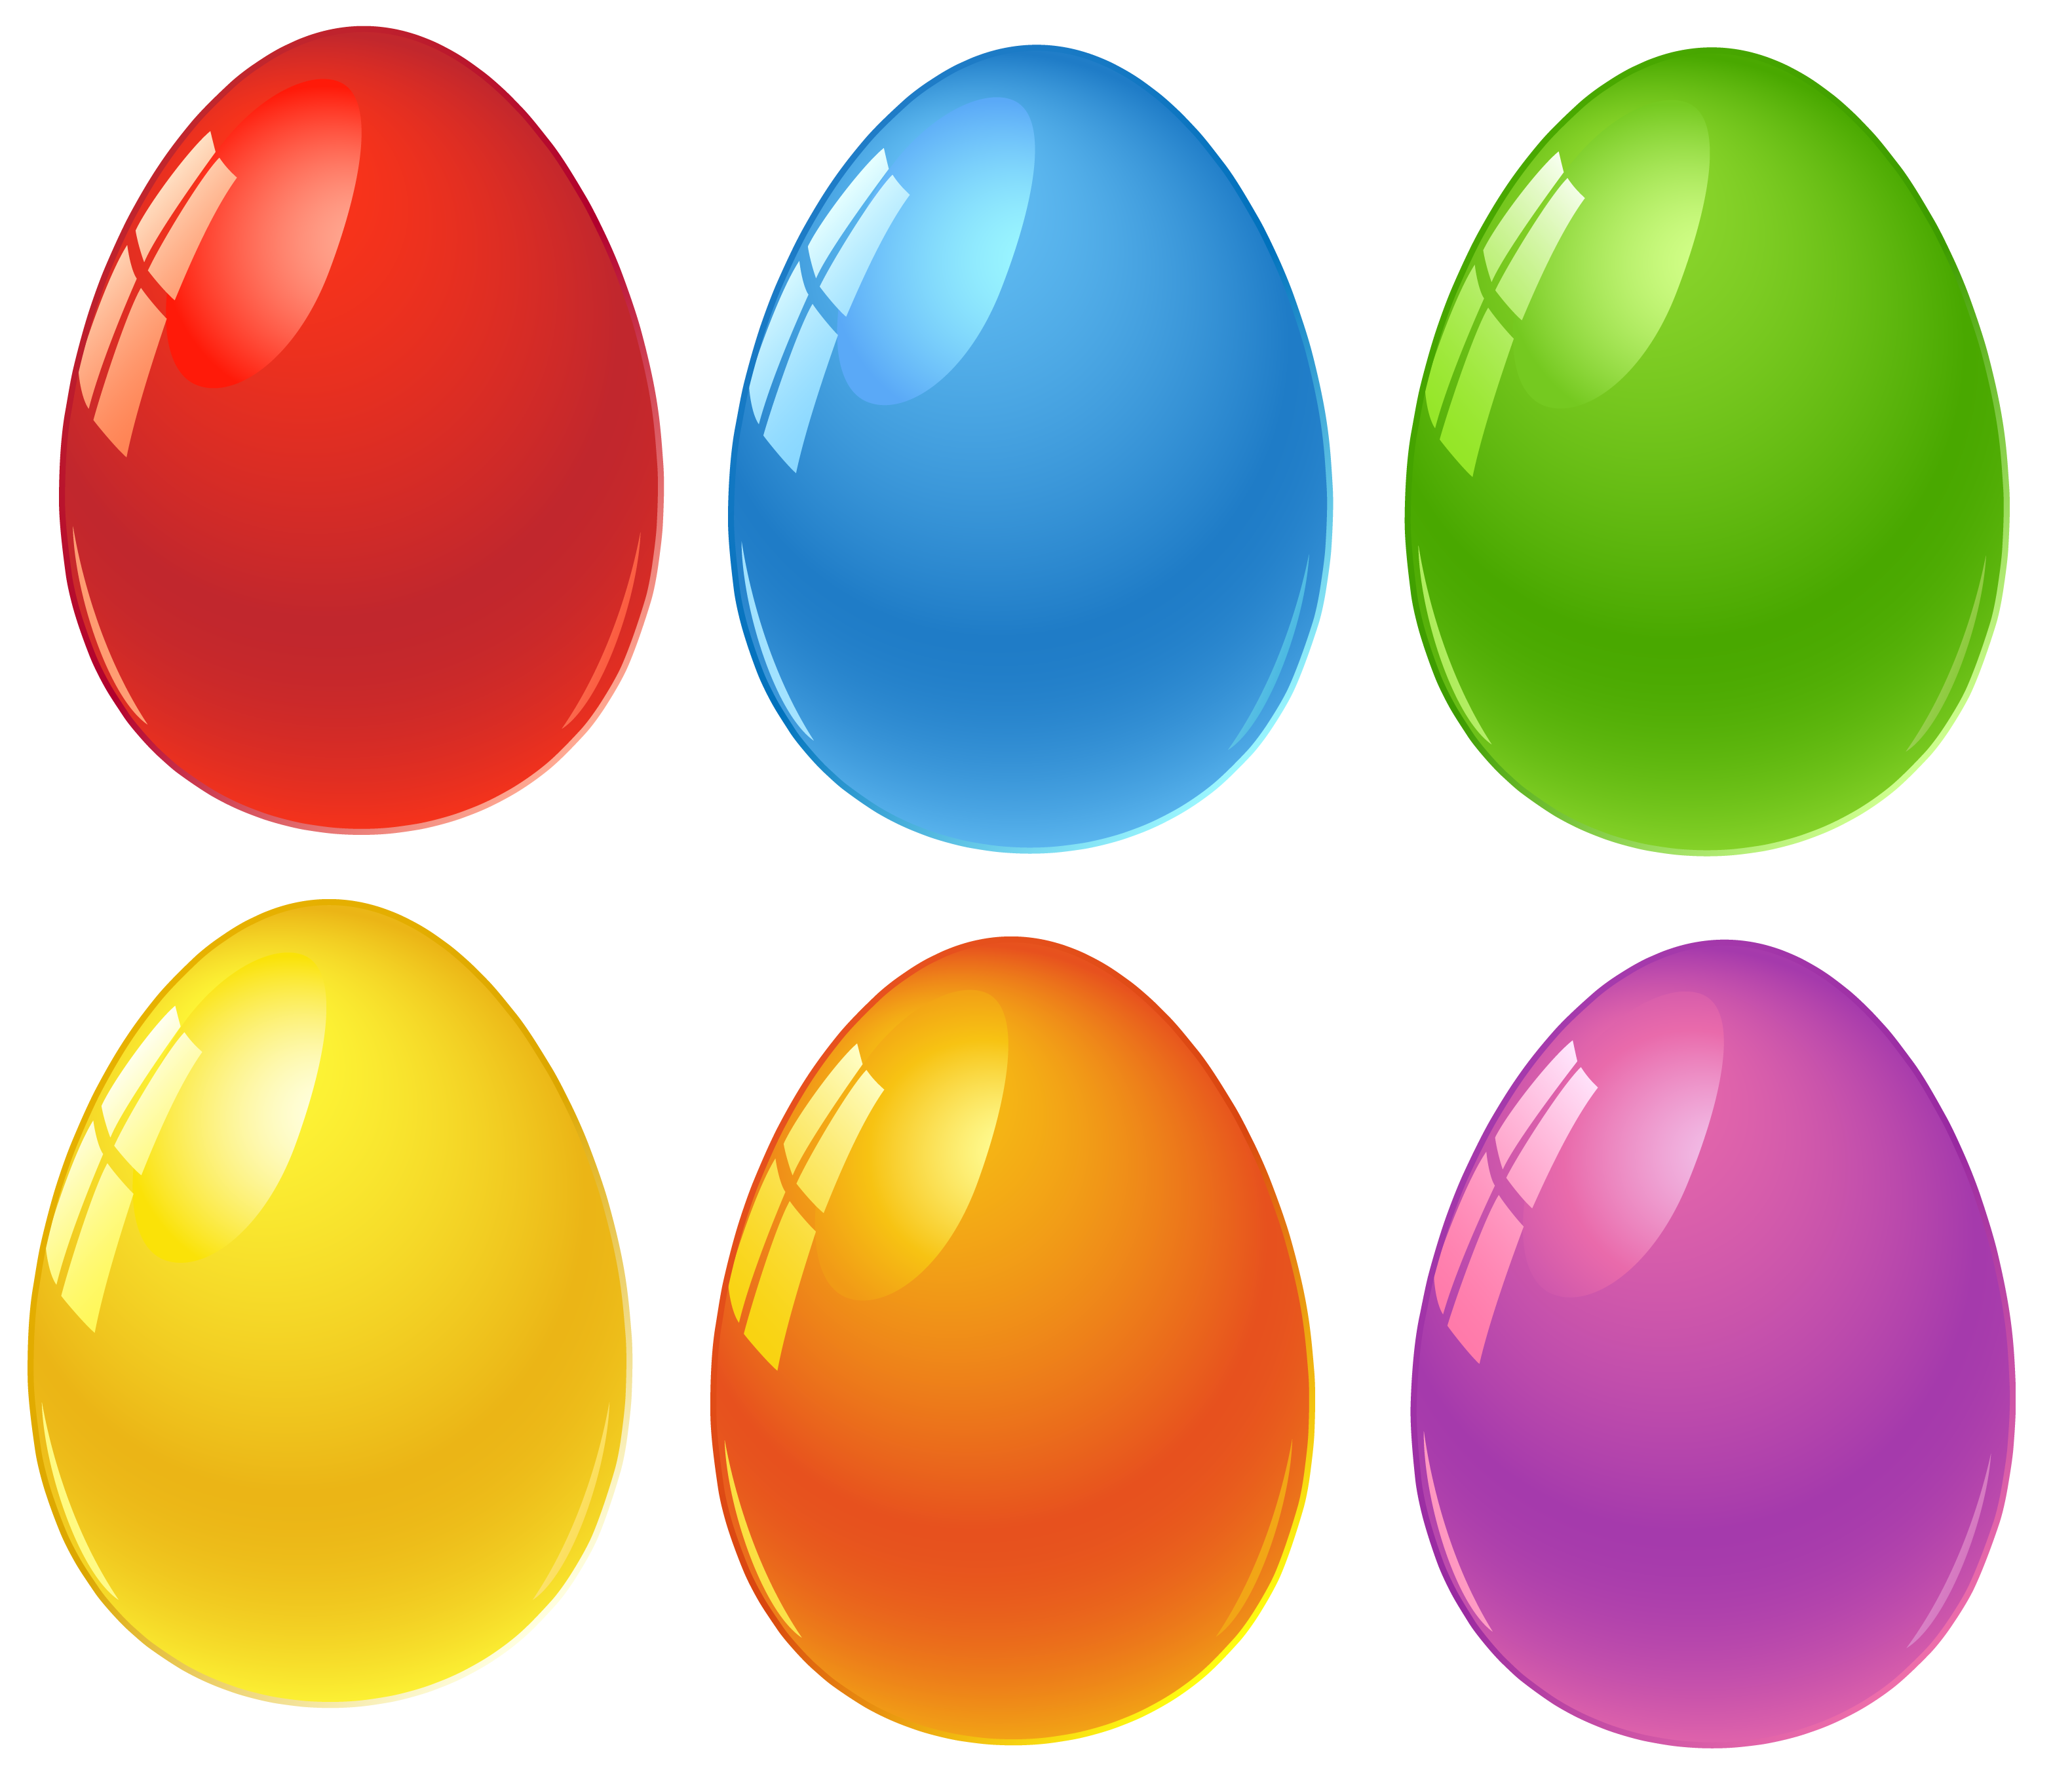 Easter egg clipart frame banner freeuse stock Easter Eggs PNG Transparent Images | Free Download Clip Art | Free ... banner freeuse stock